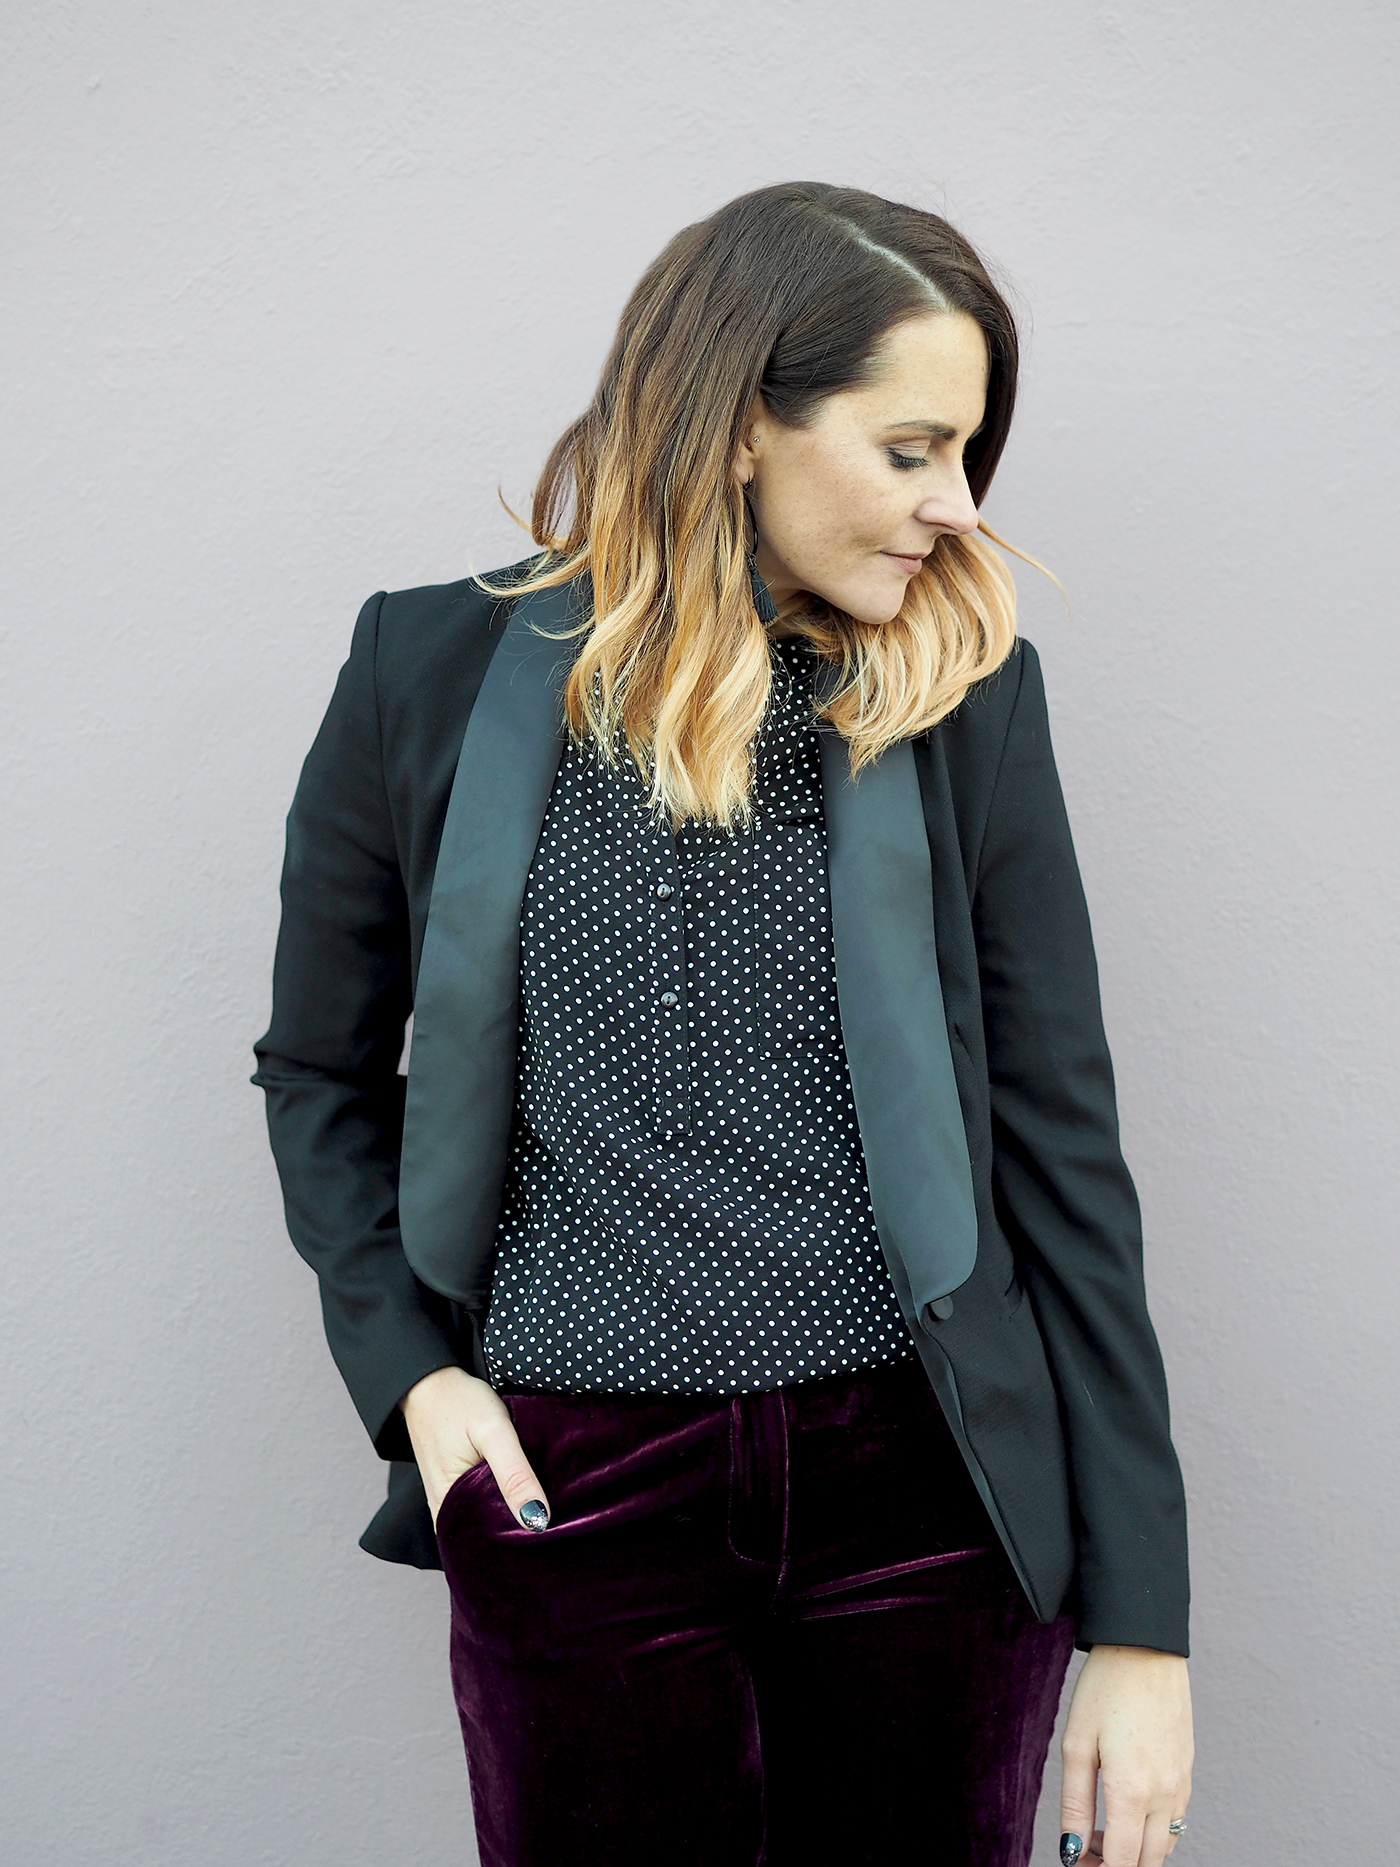 party outfit velvet trousers and polka dot shirt